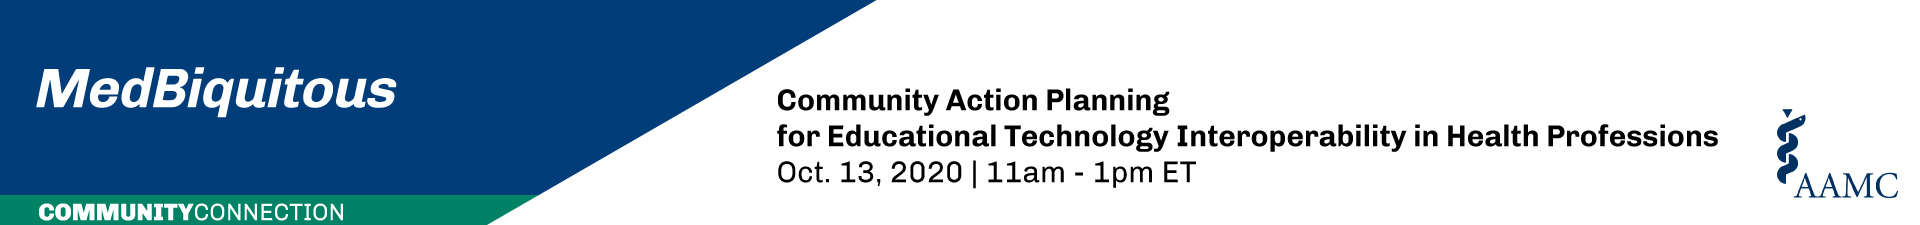 MedBiquitous/WGEA CRIME Present: Community Action Planning for Educational Technology Interoperability in Health Professions